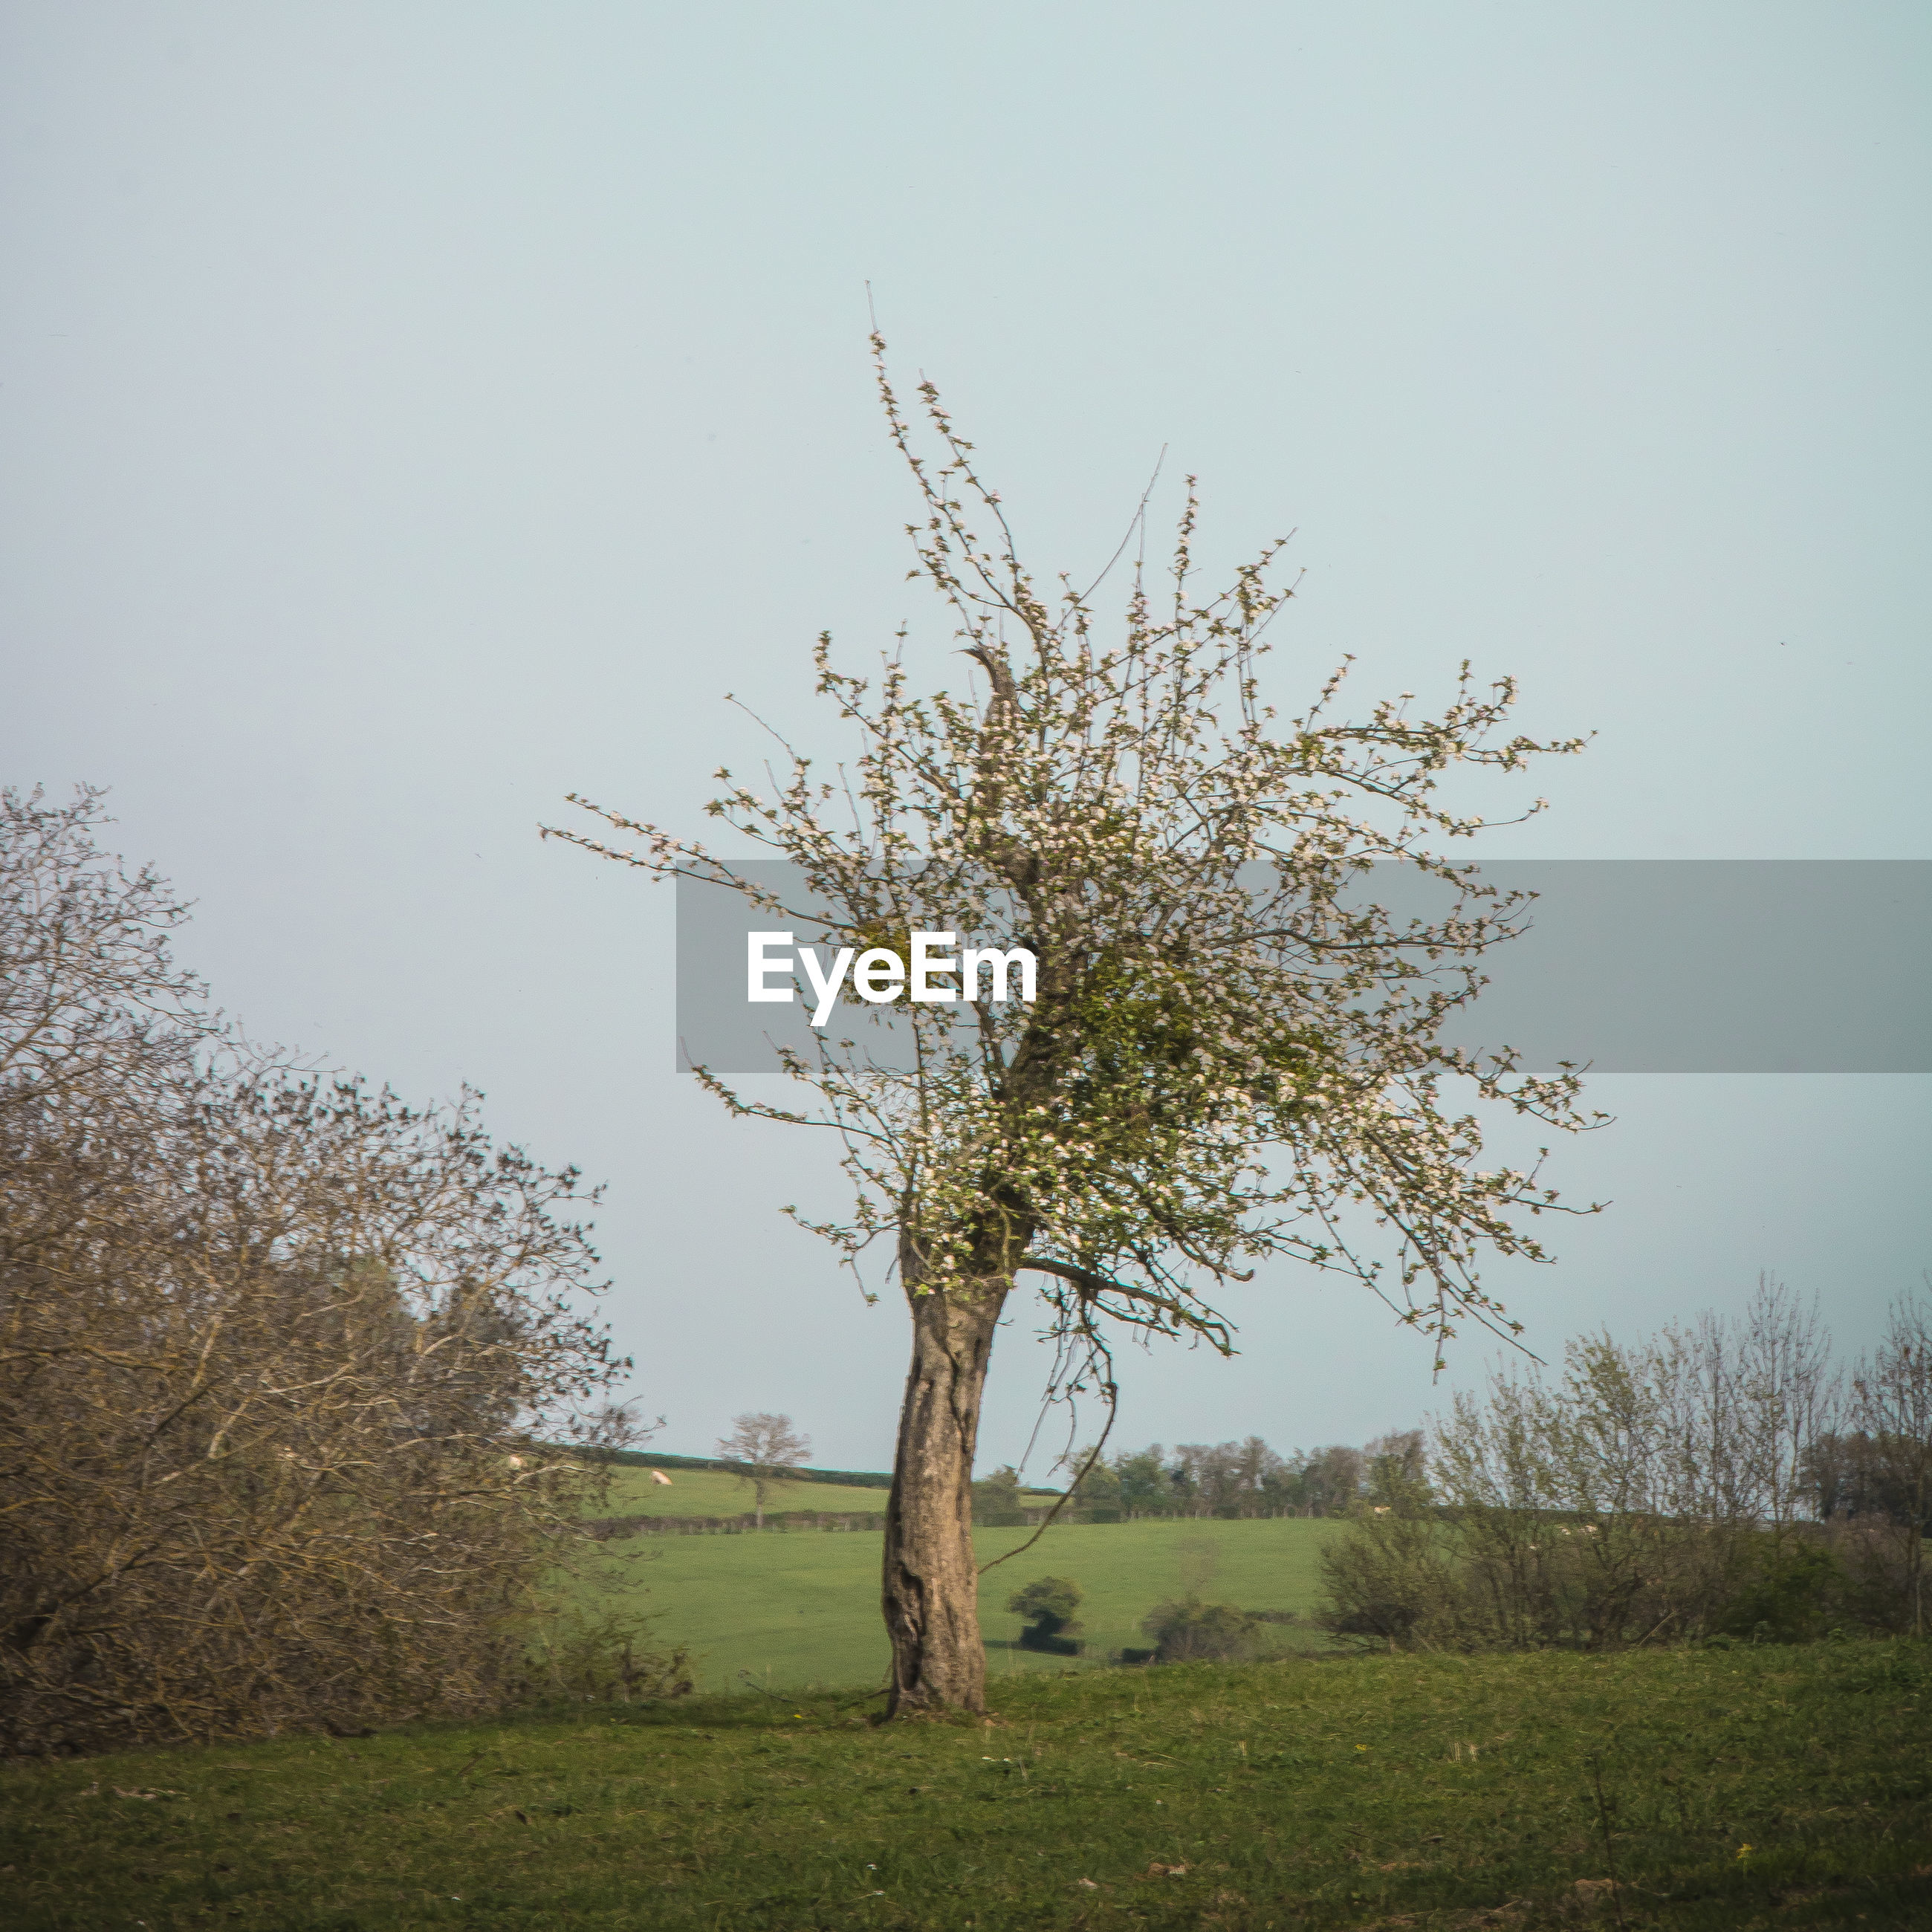 Tree on grassy field against clear sky